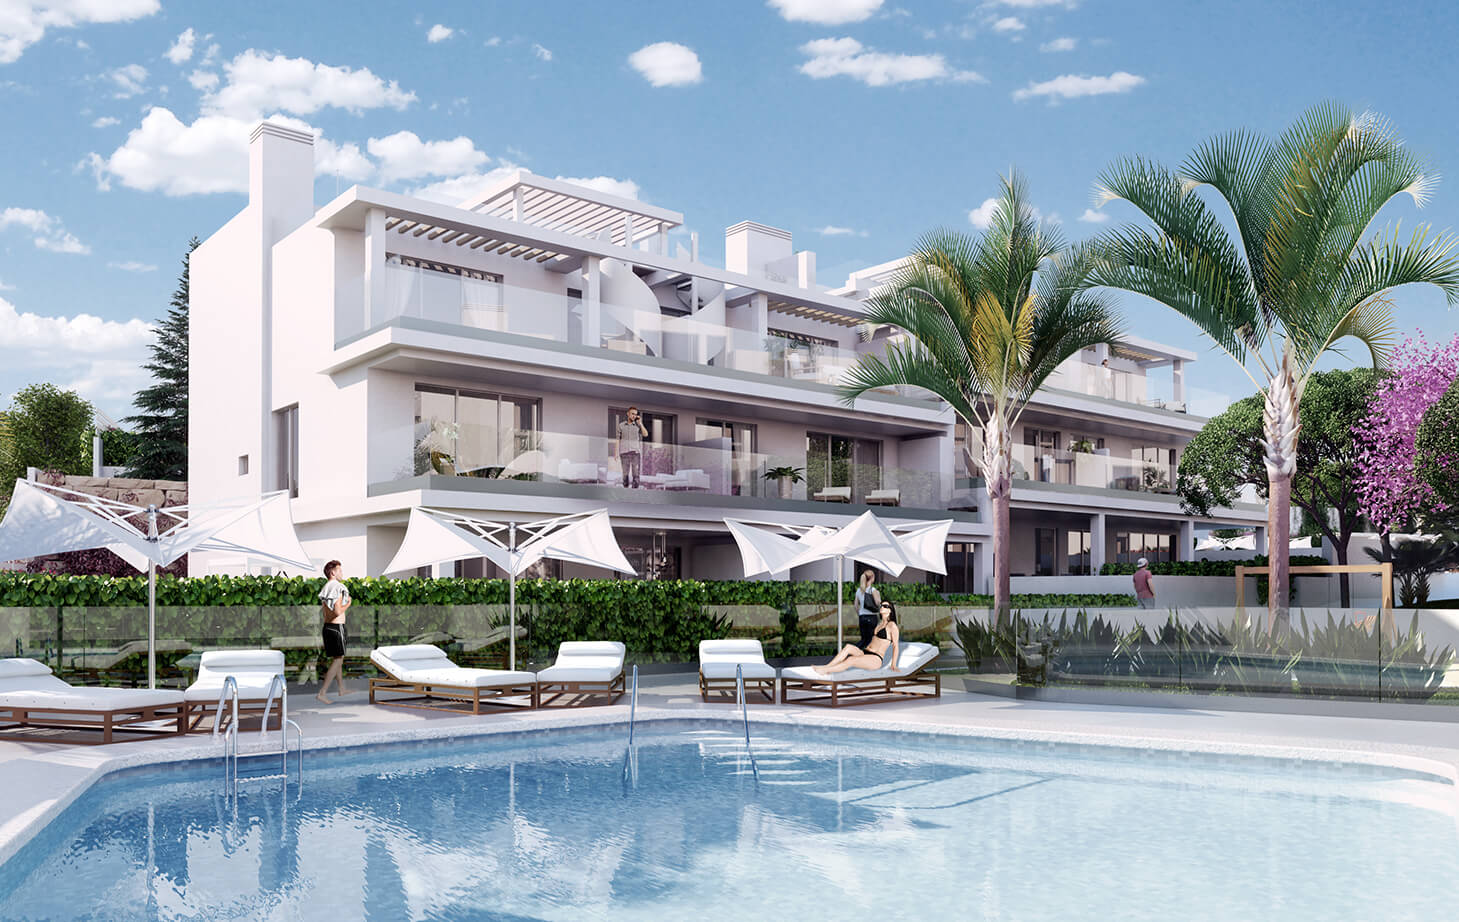 Apartment in Estepona MA6017191 1